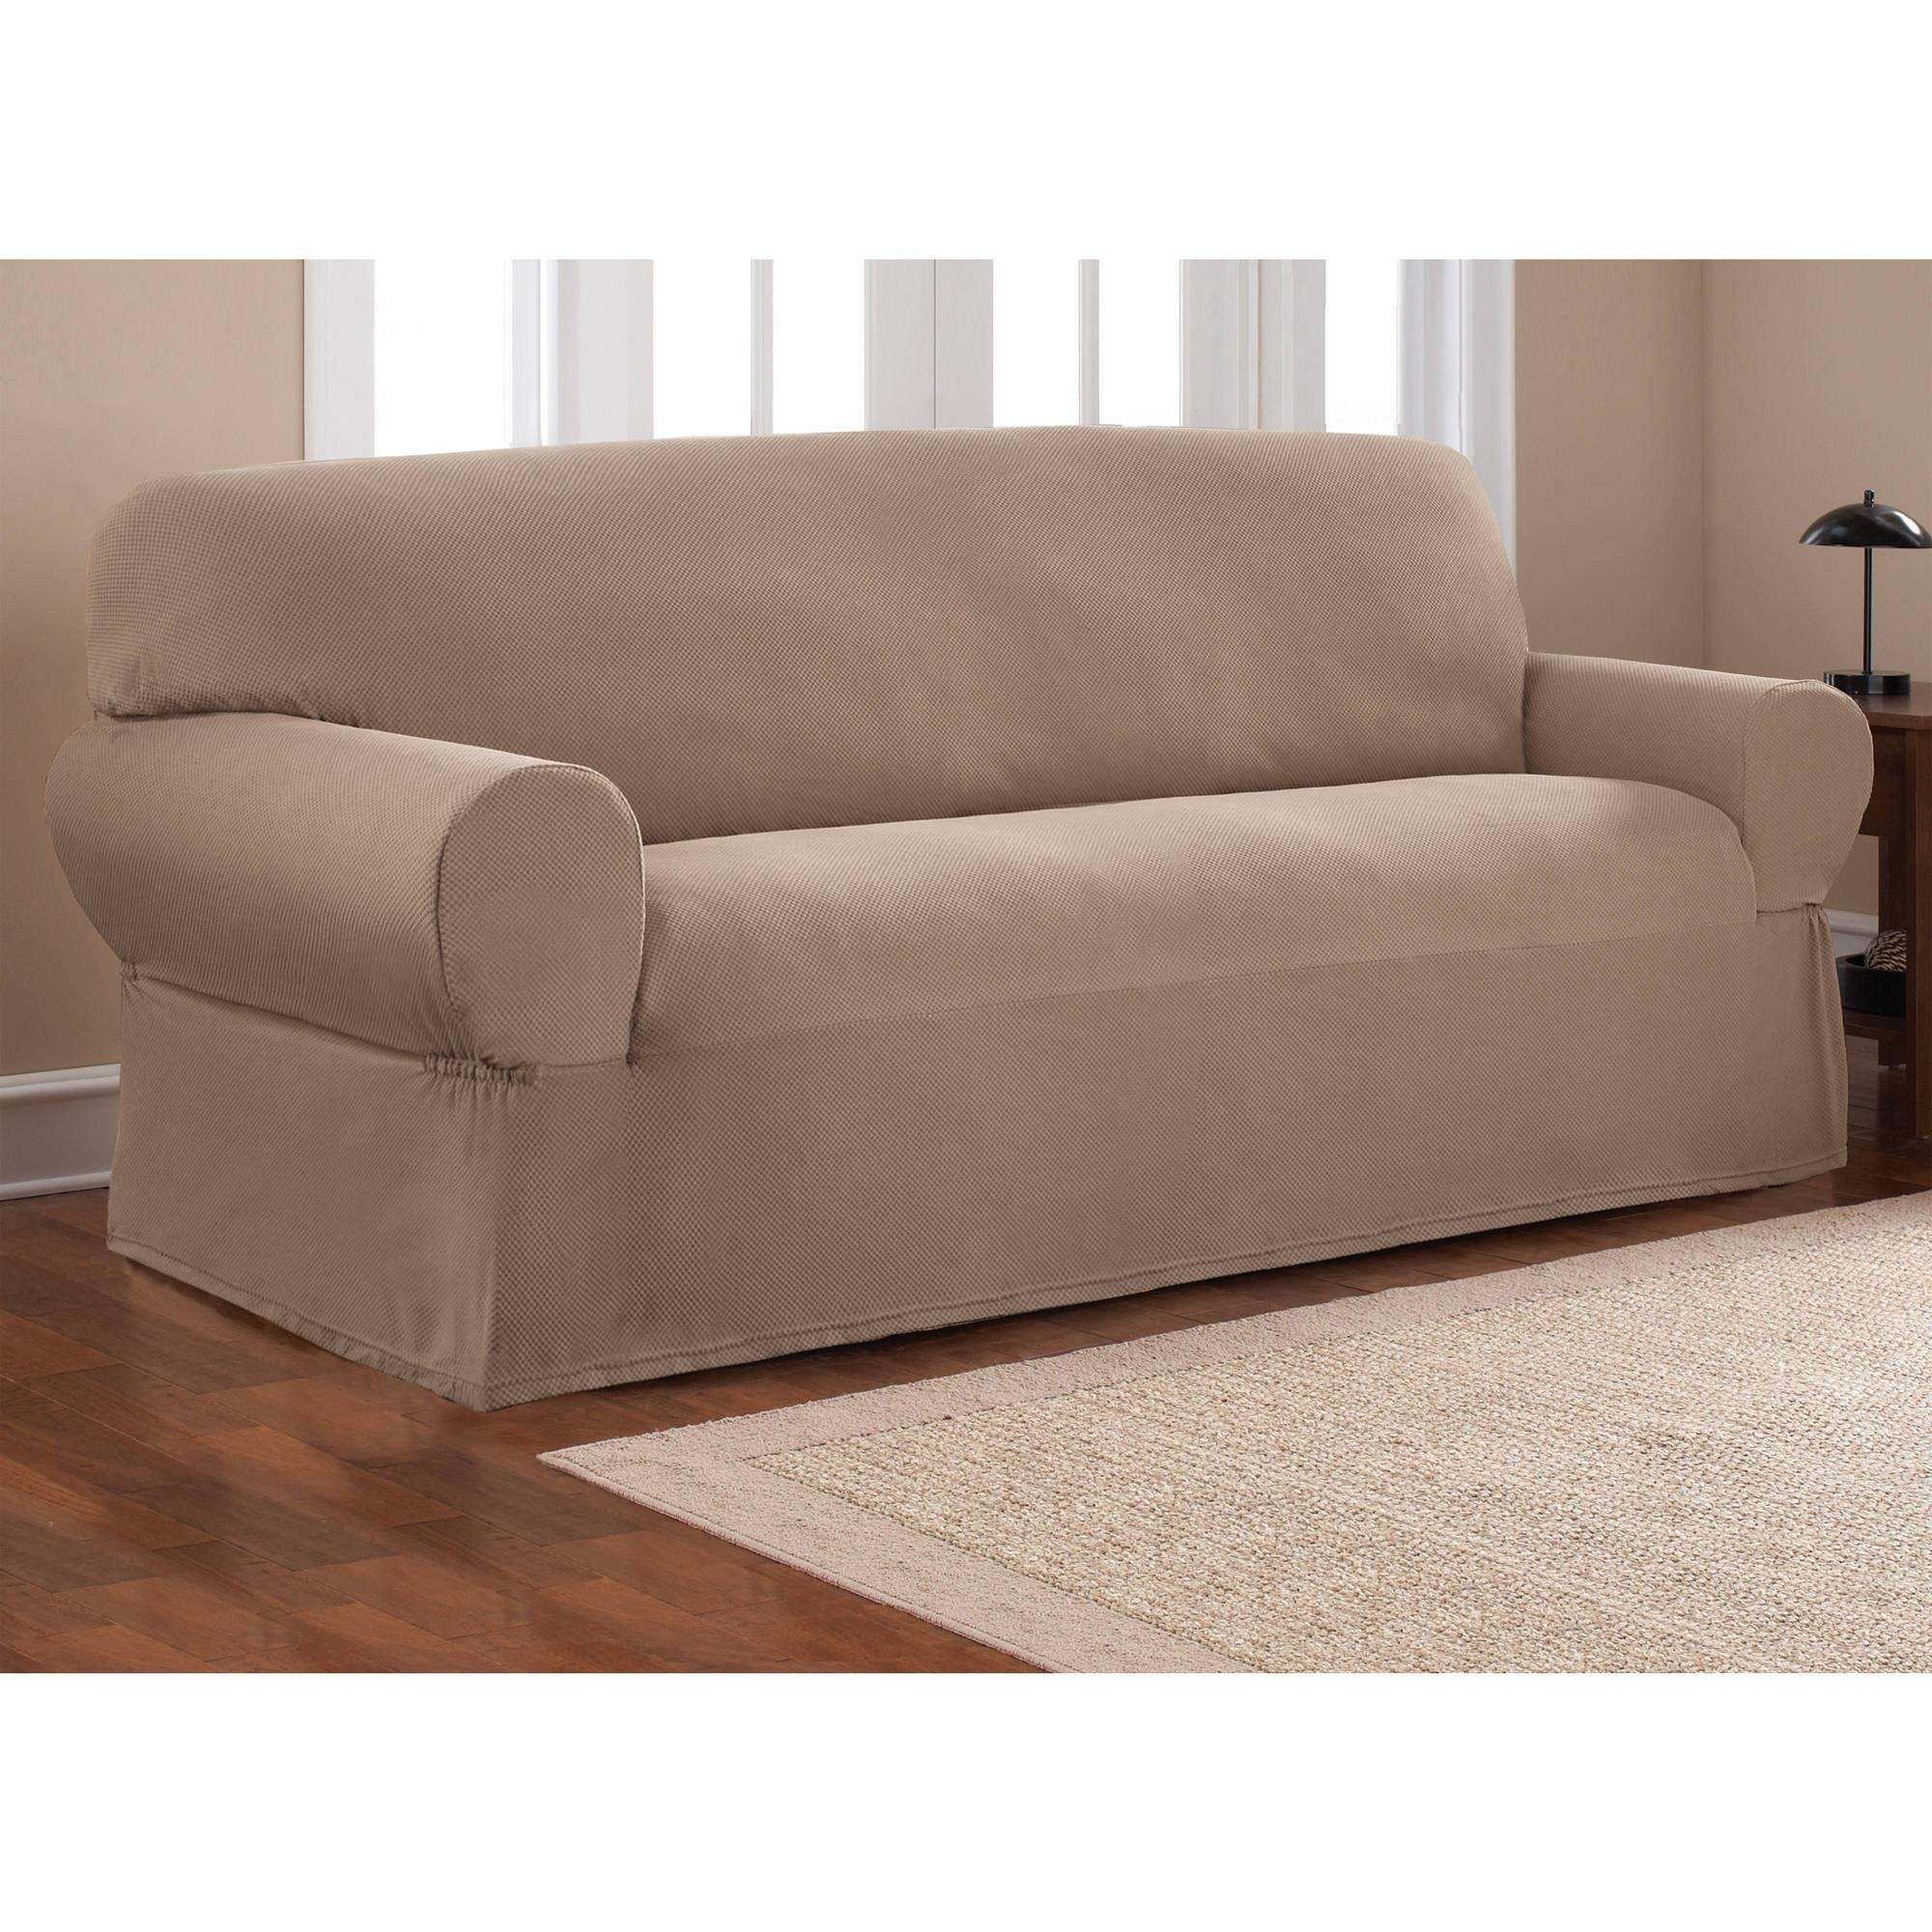 Furniture: Wonderful Walmart Couch Covers Design For Alluring Throughout 3 Piece Sectional Sofa Slipcovers (Image 12 of 20)